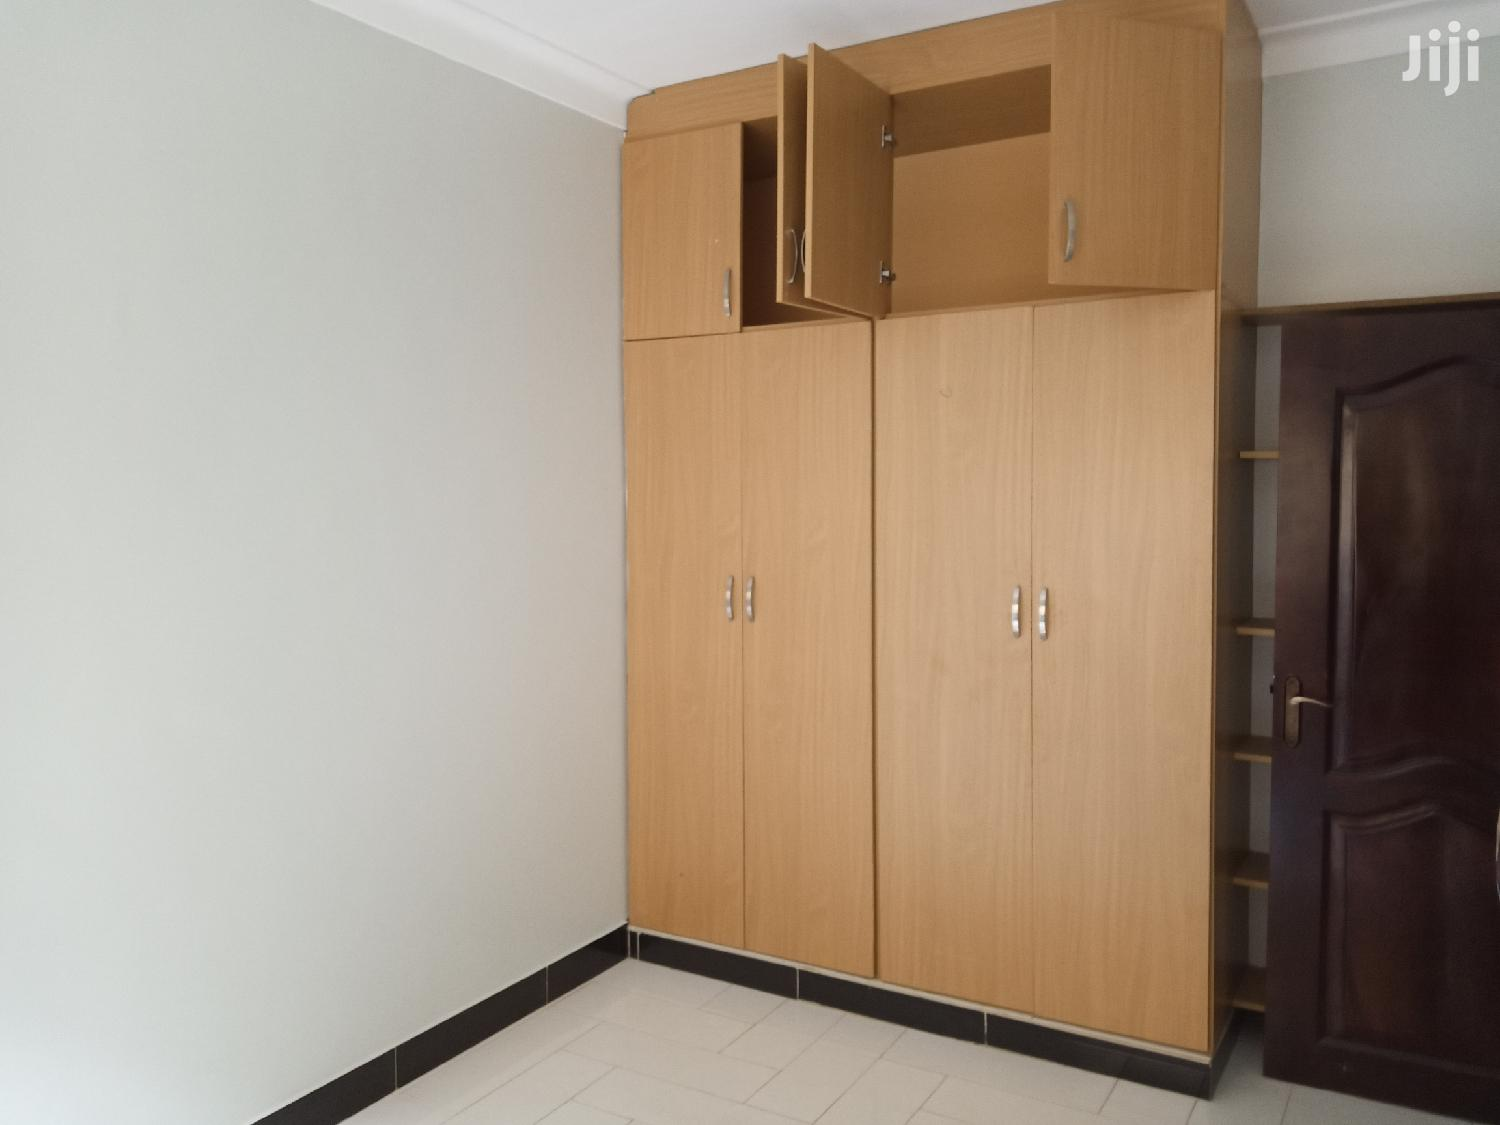 3 Bedrooms For Rent In Naalya Estate | Houses & Apartments For Rent for sale in Kampala, Central Region, Uganda